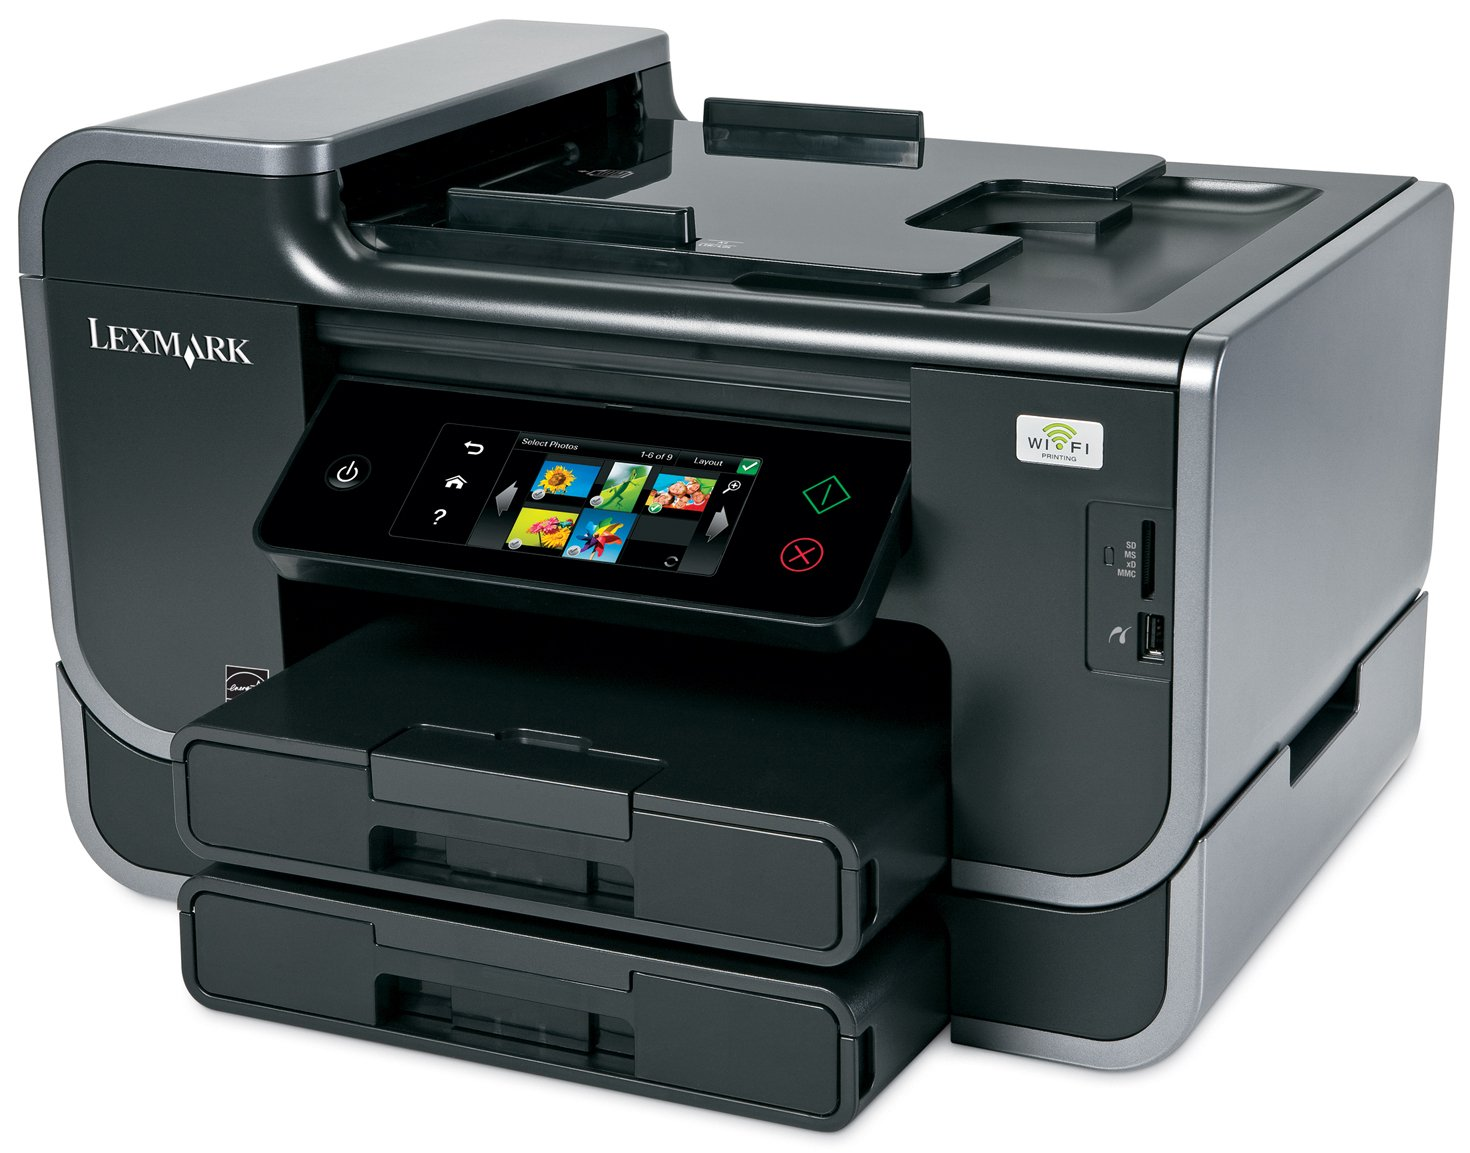 Lexmark Platinum Pro905 Business Class Wireless Multifunction Inkjet Printer with Web-Enabled Touchscreen by Lexmark (Image #1)